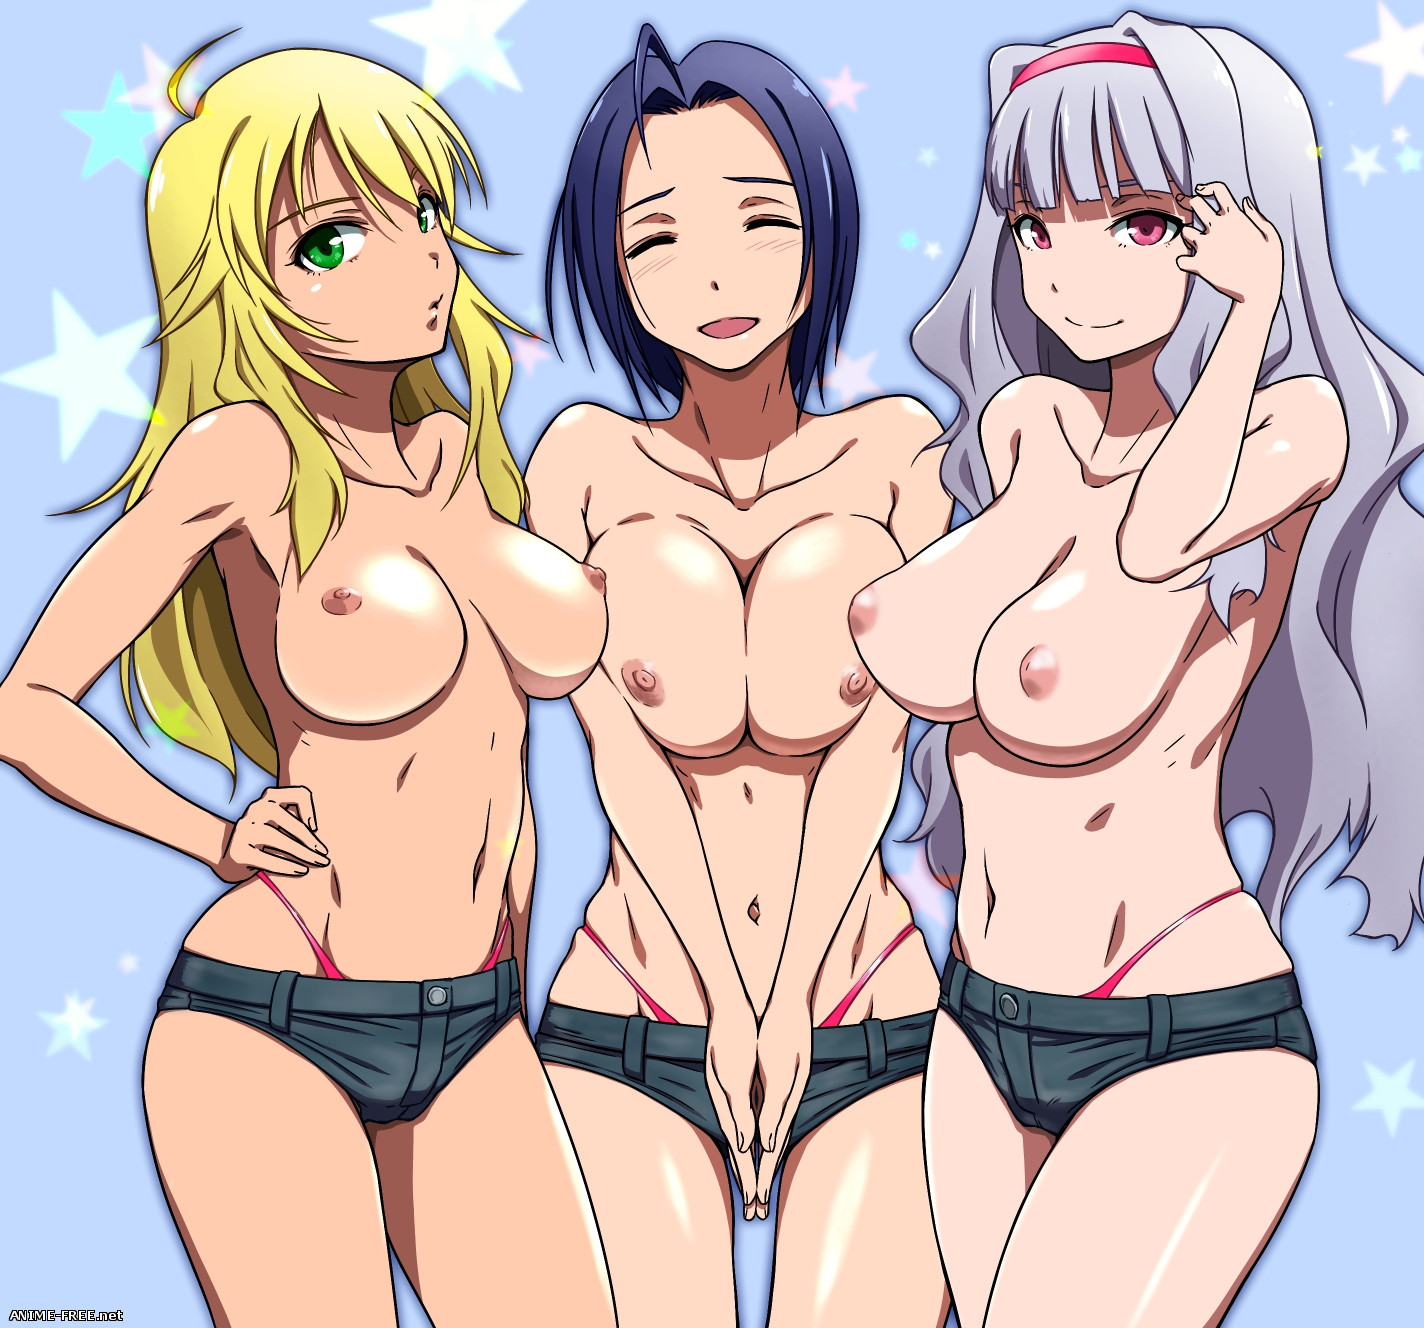 The Idolmaster / THE iDOLM@STER (Collection) - Сборник хентай арта [Ptcen] [JPG,PNG,GIF] Hentai ART